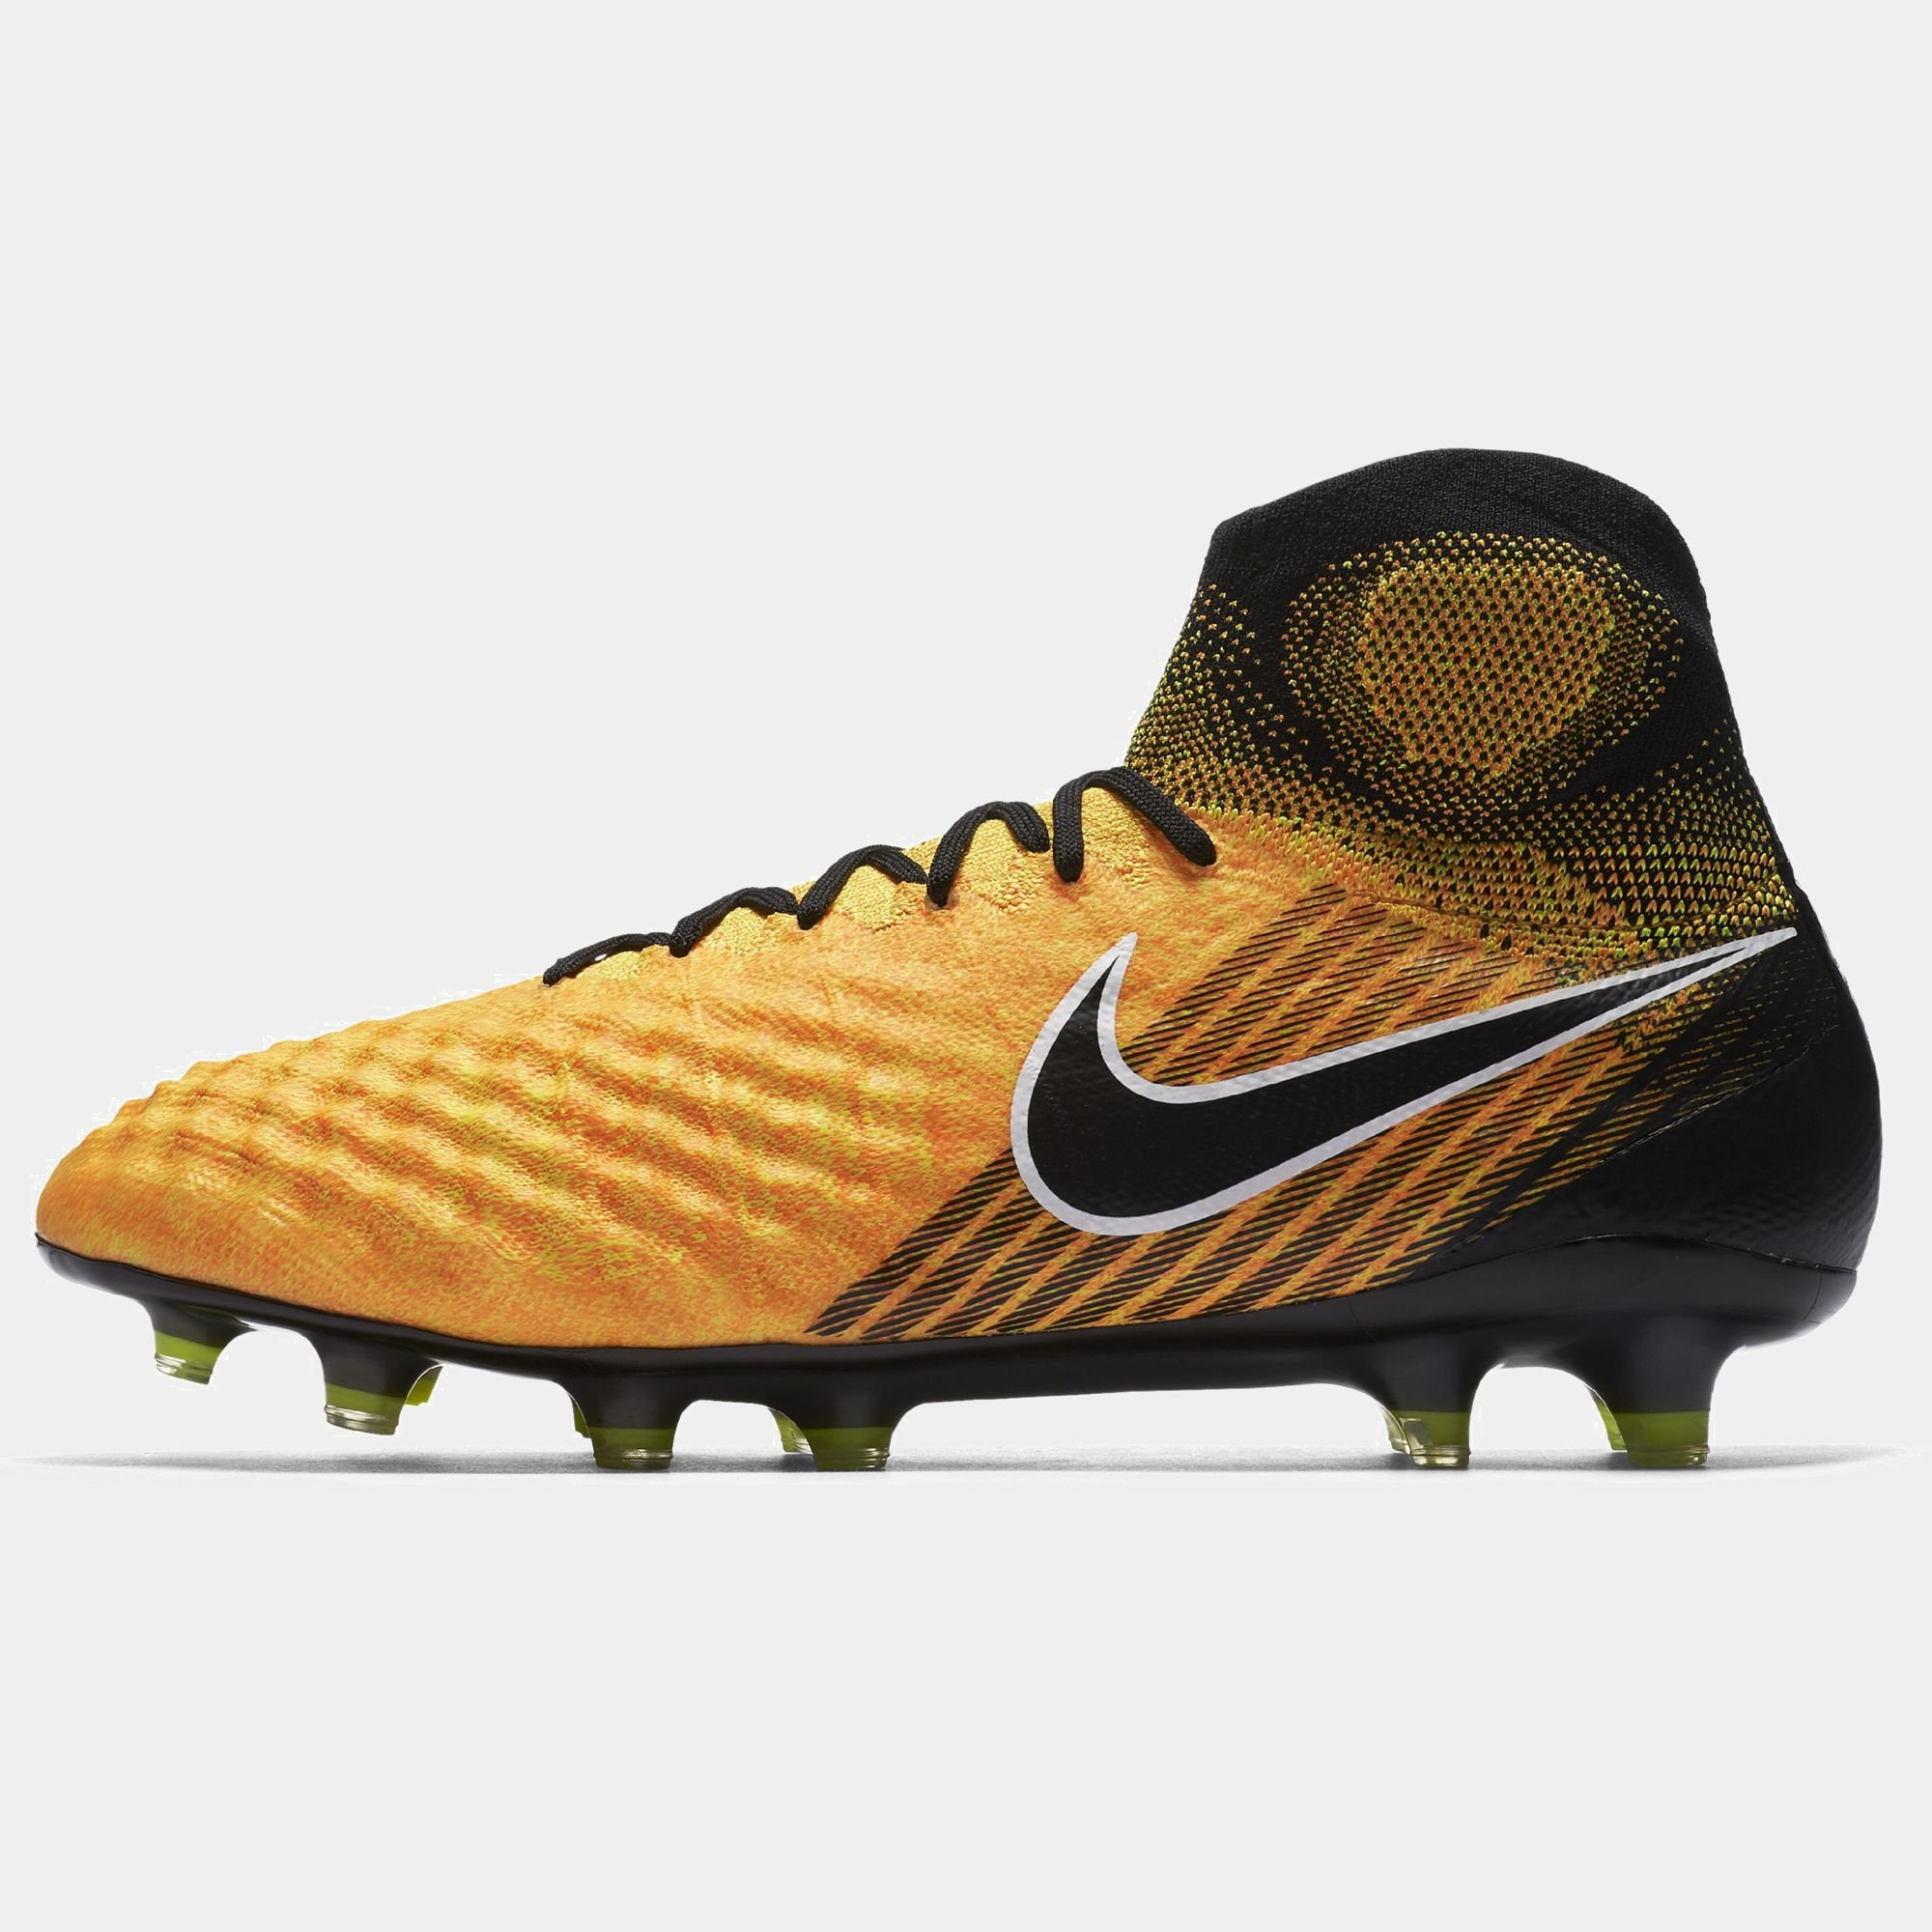 ec76b95d09a Men s Nike Magista Obra II (FG) Firm-Ground Football Boot – Branded Feet